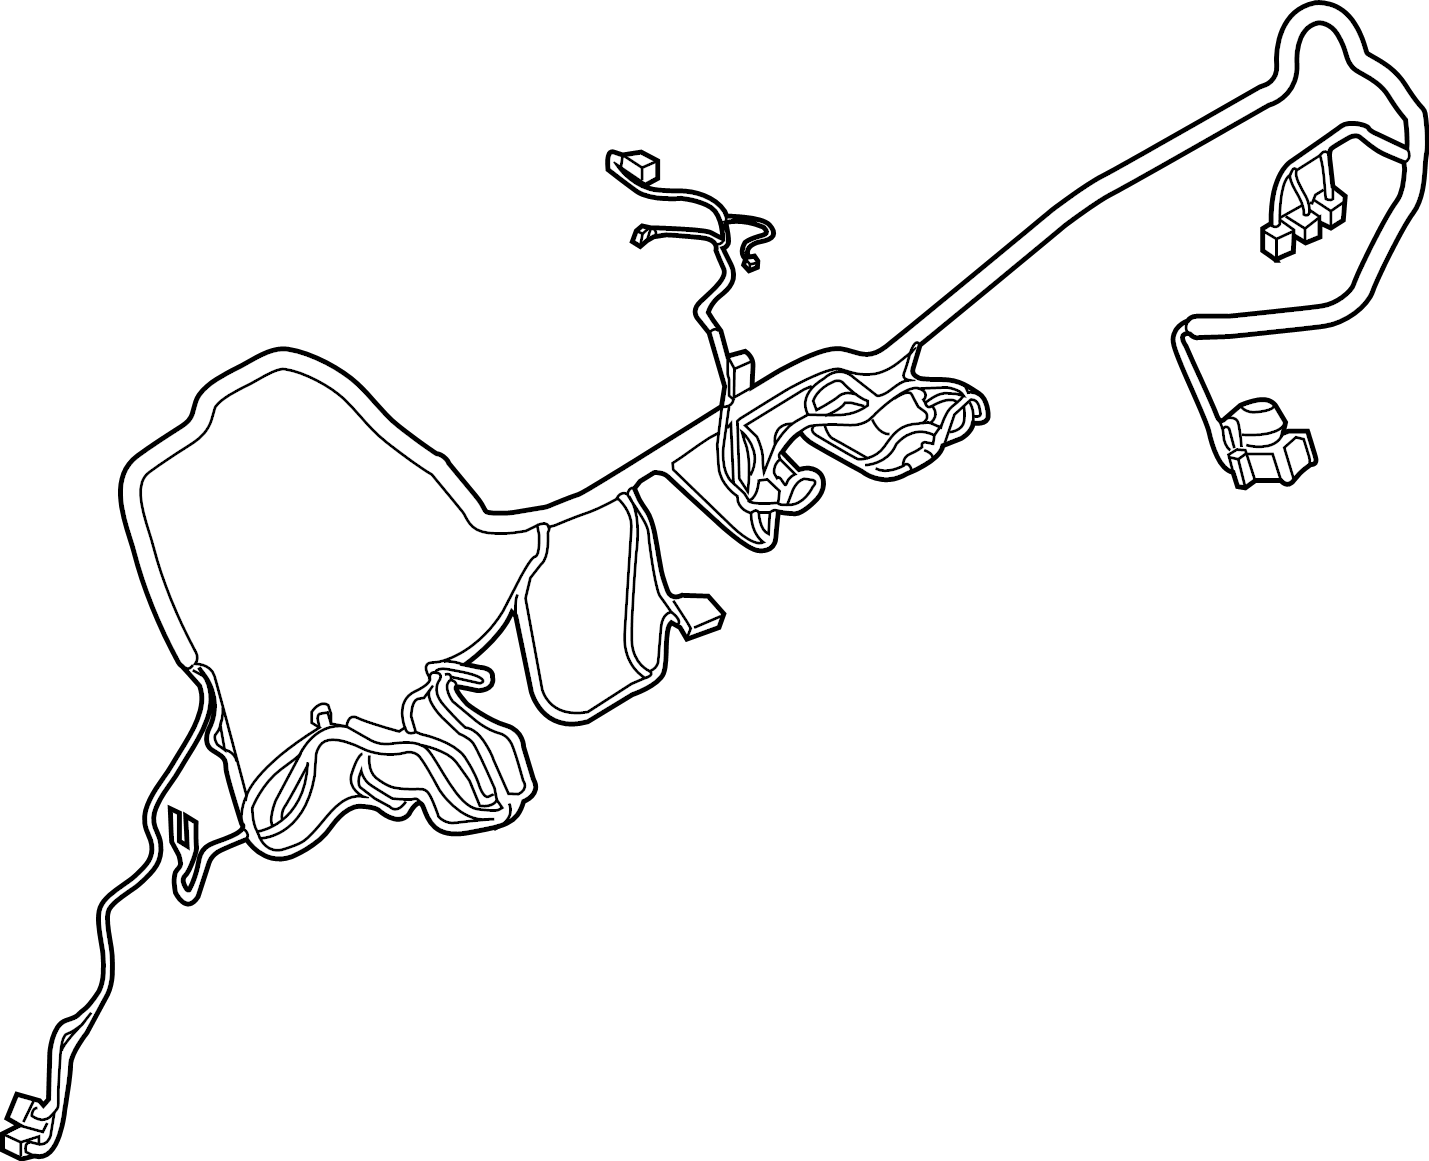 Chevrolet Equinox Instrument Panel Wiring Harness